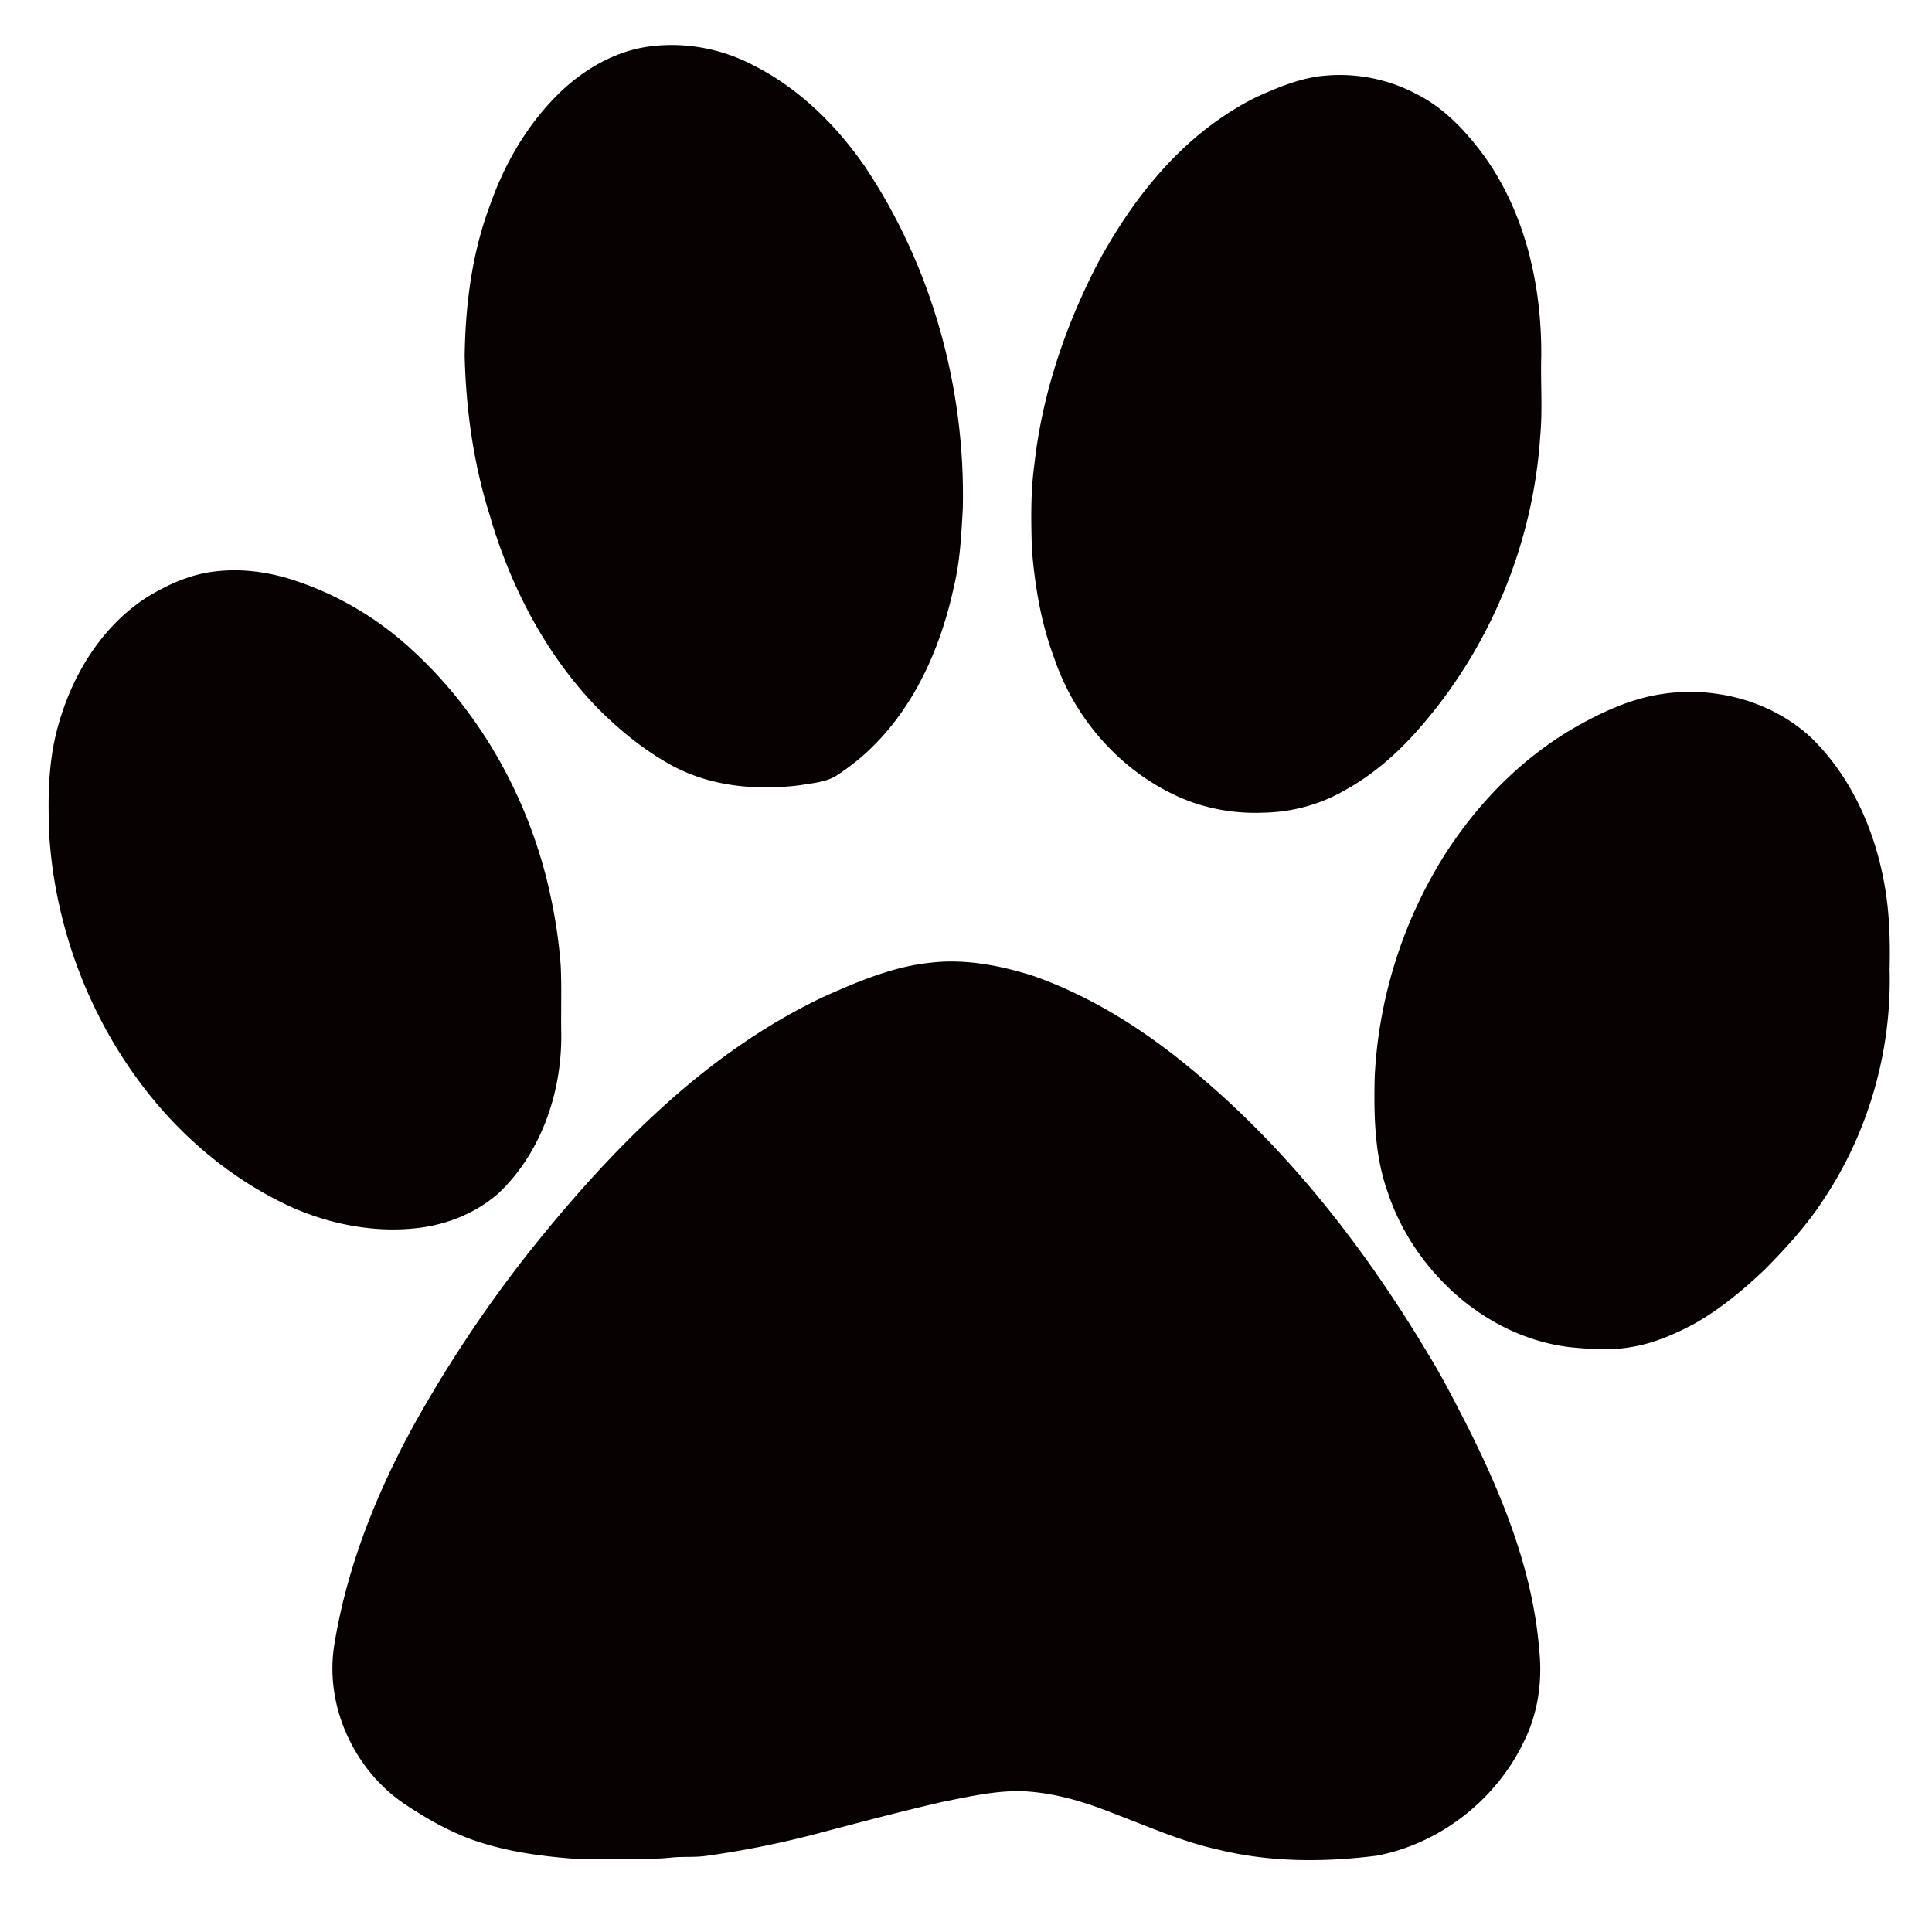 Tiger Paw Print Clipart ...